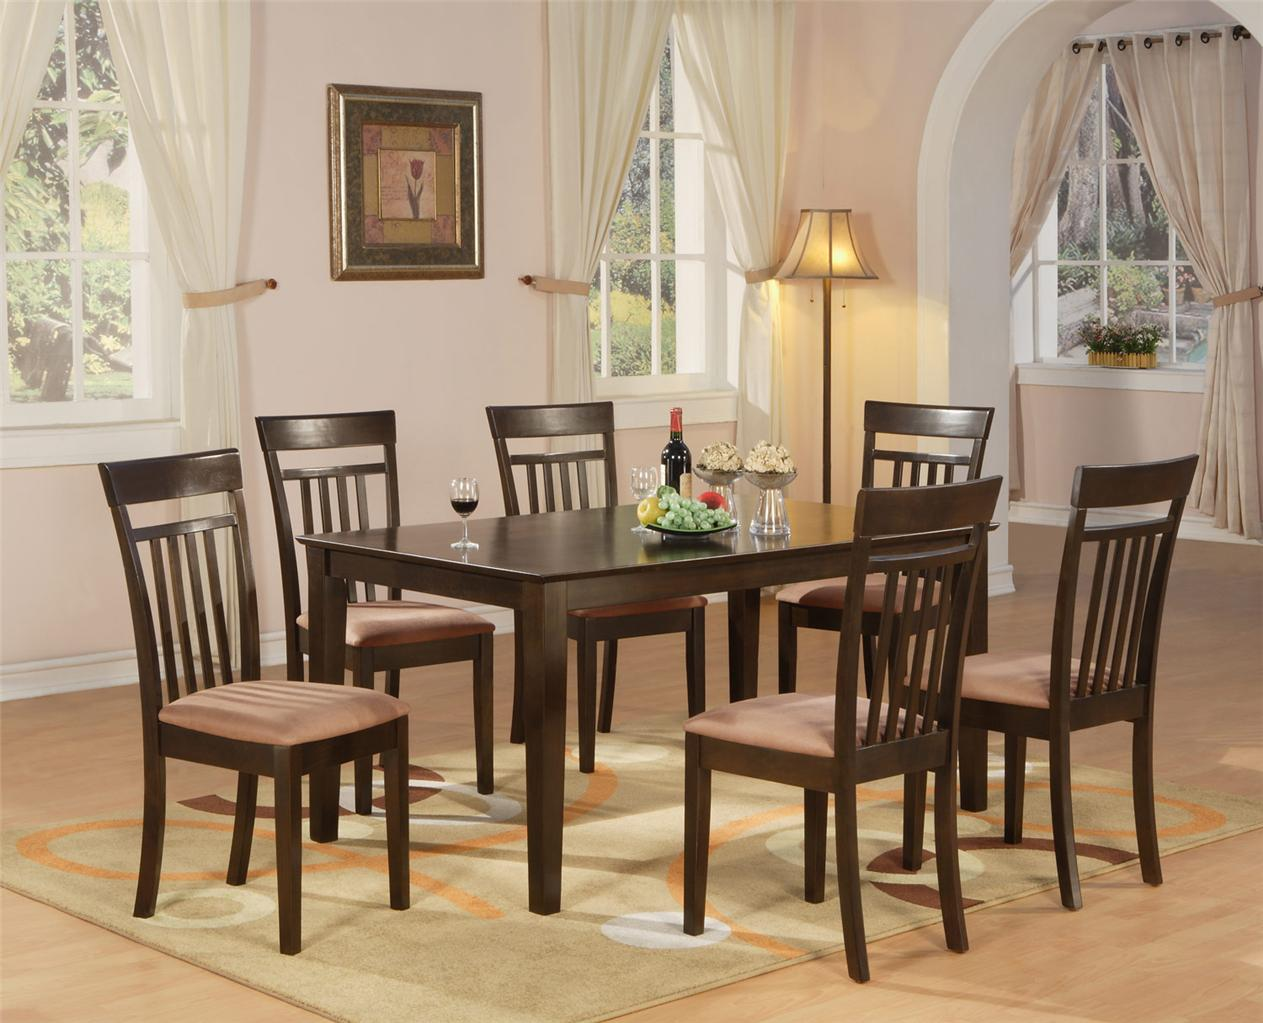 Kitchen and dining room sets photo - 1